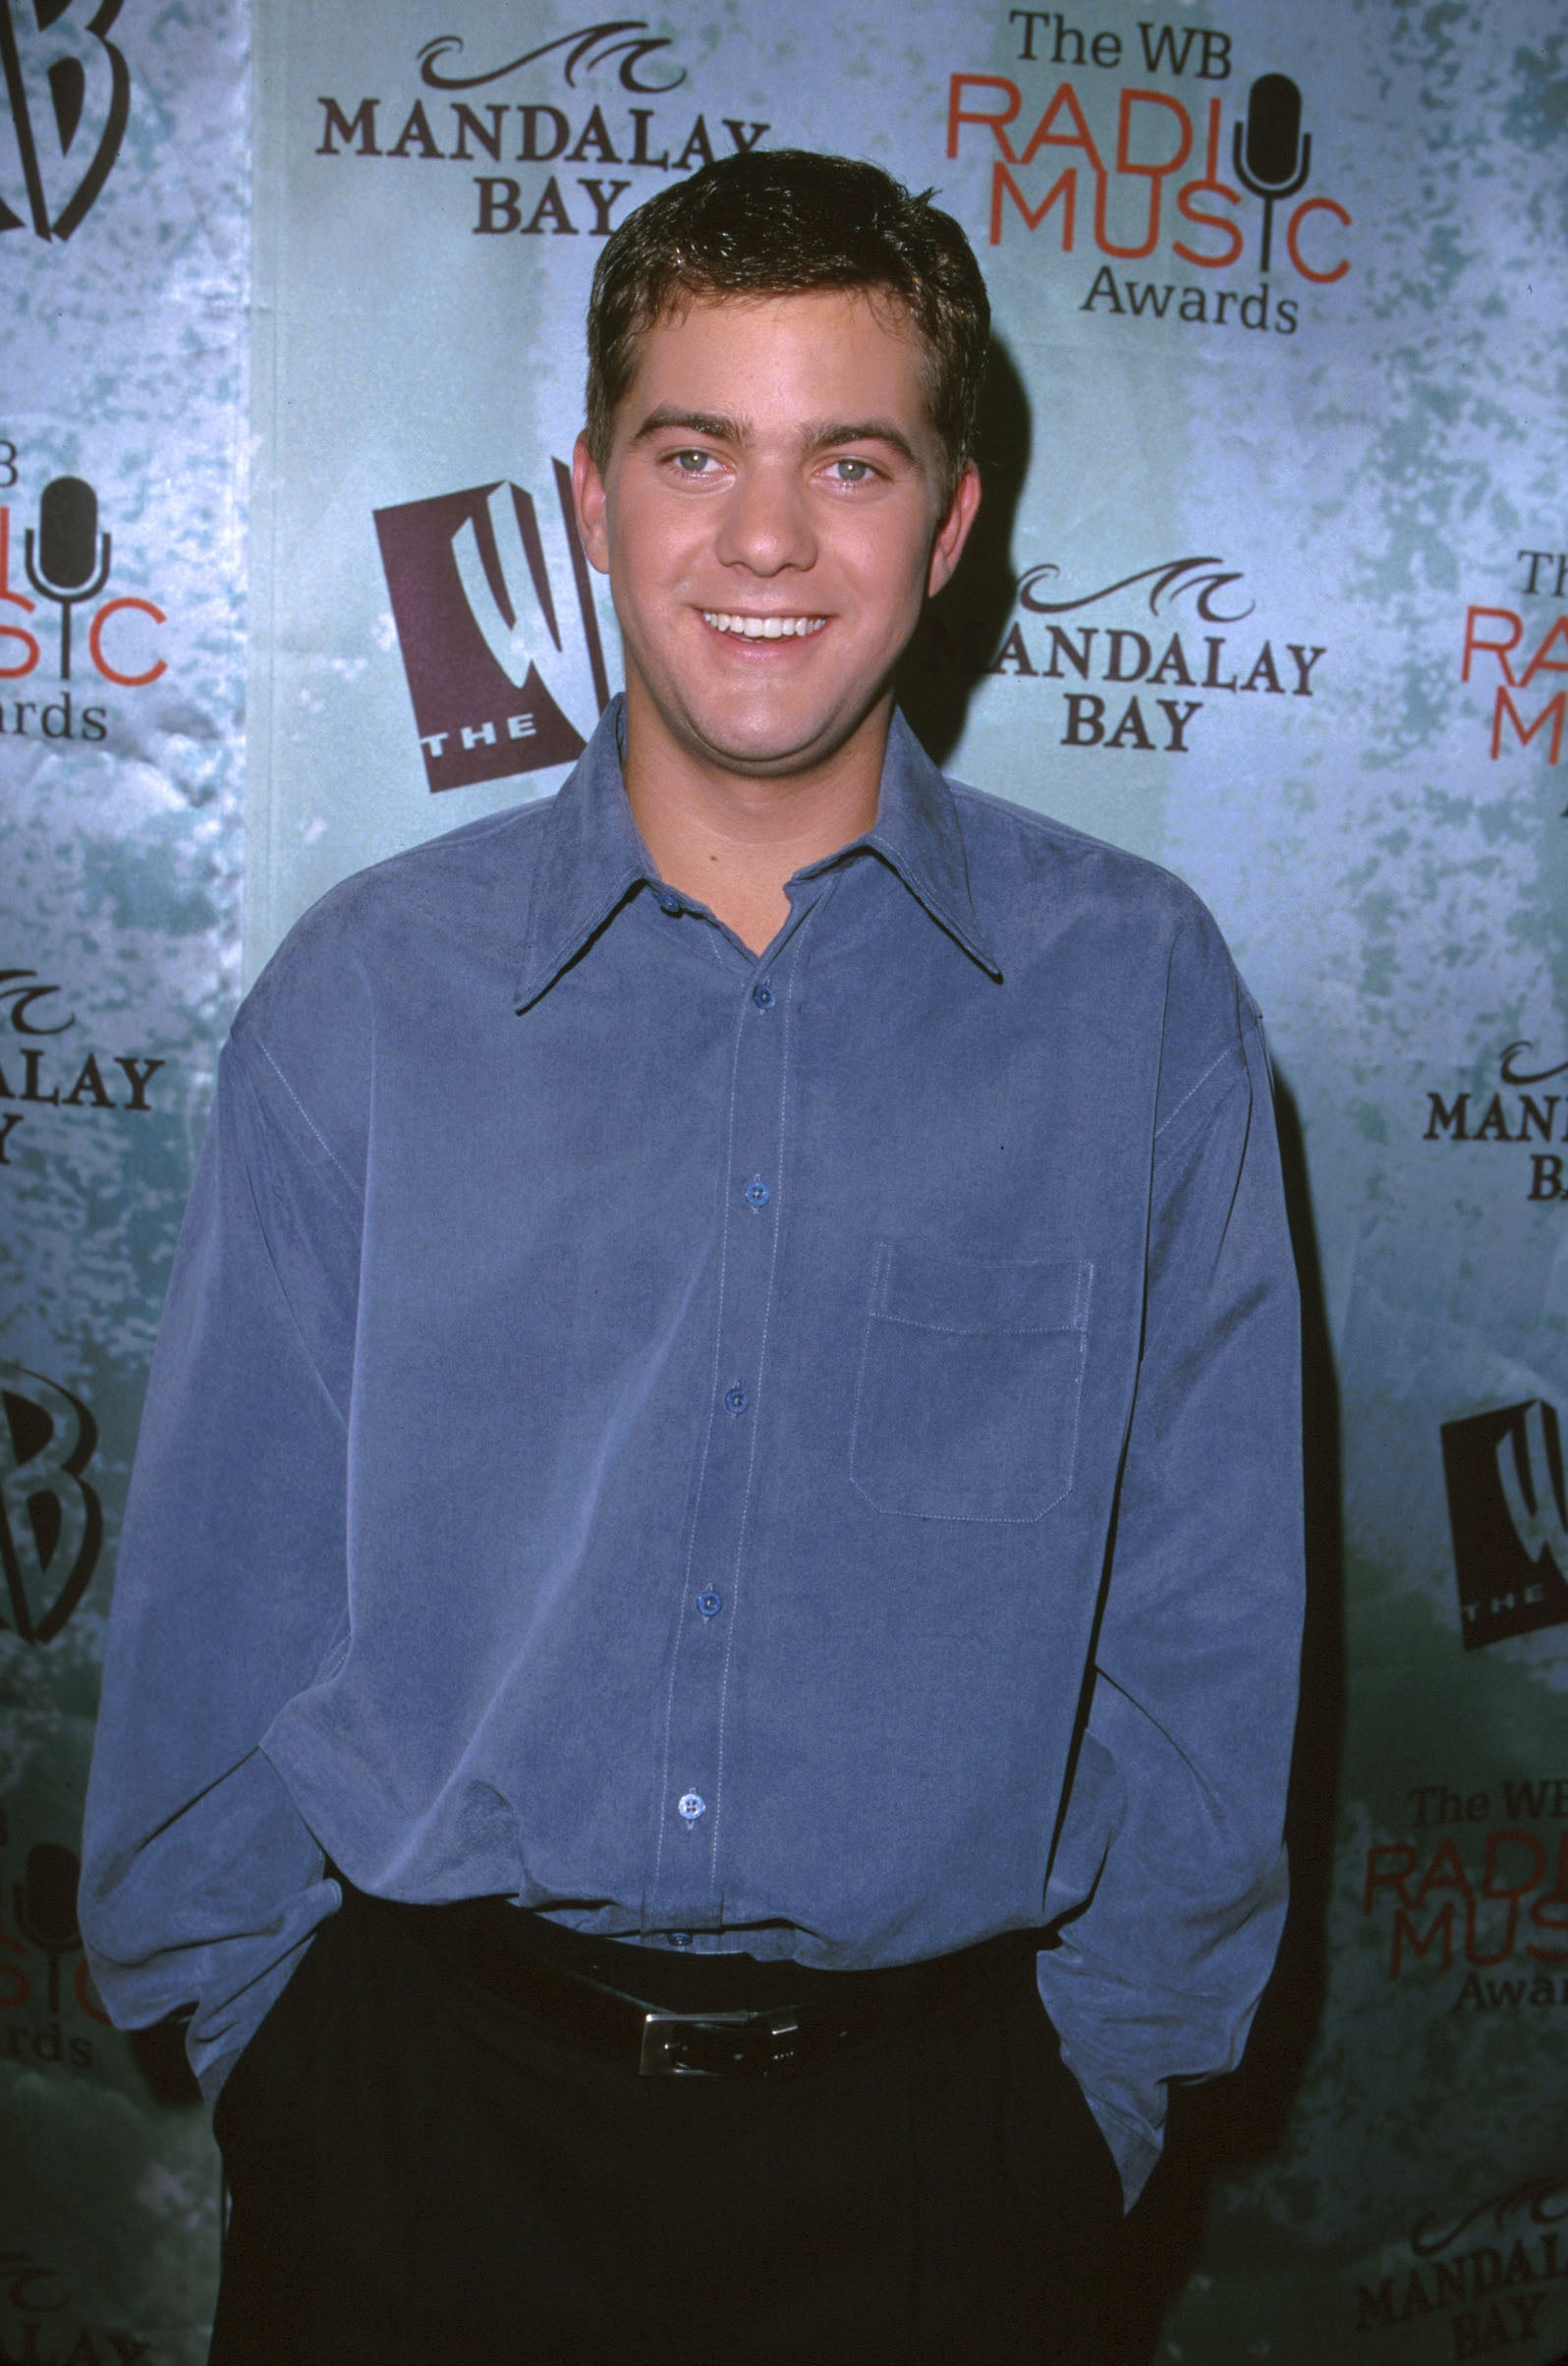 Back in 1999, he was Dawson's adorable BFF Pacey.